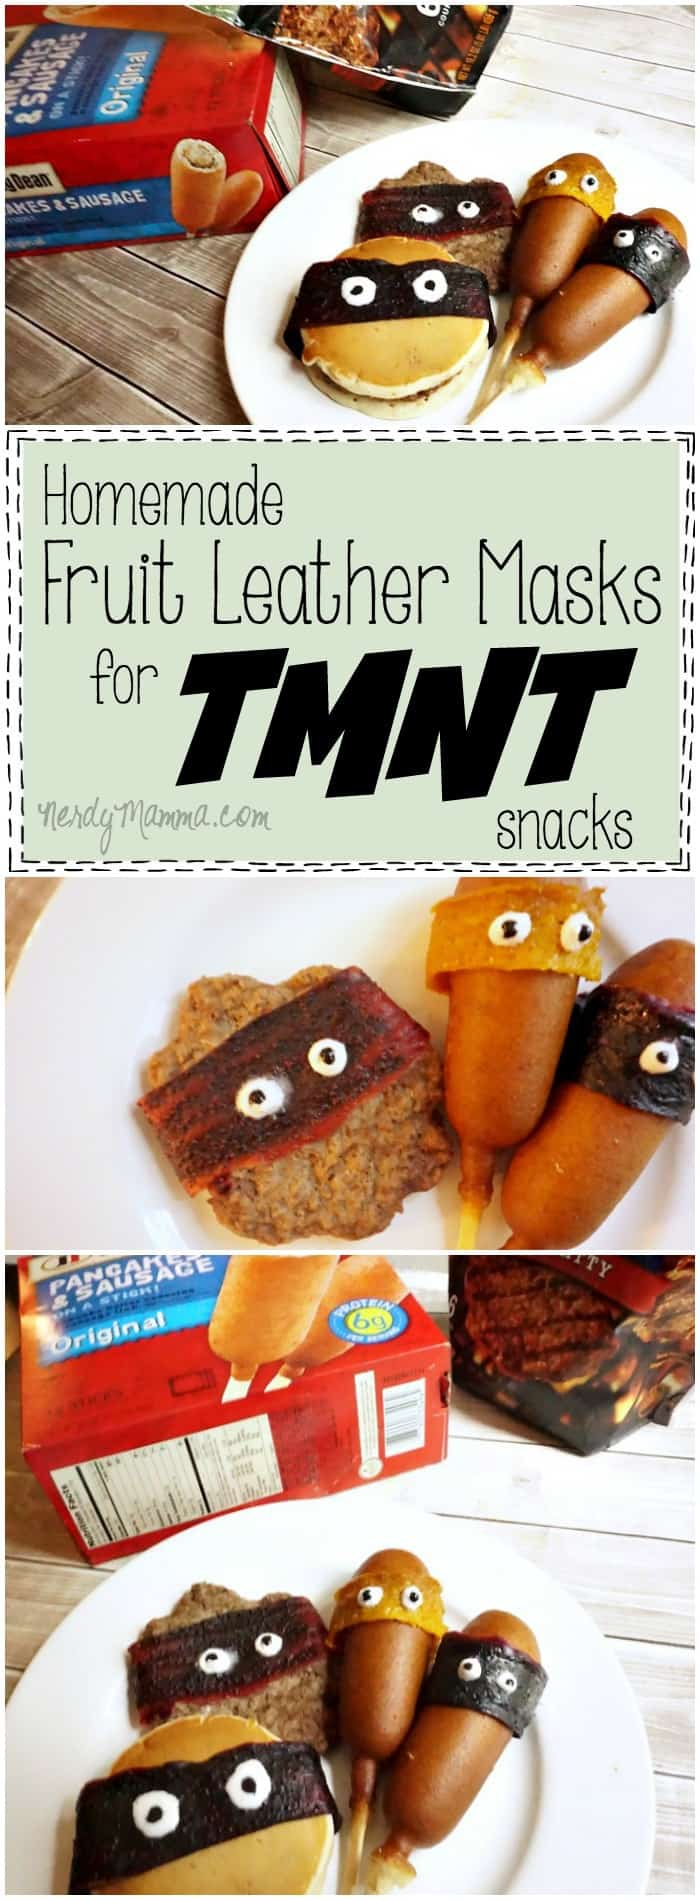 This recipe for homemade fruit leather for a little Teenage Mutant Ninja Turtle snack action is awesome! My kids are going to flip.